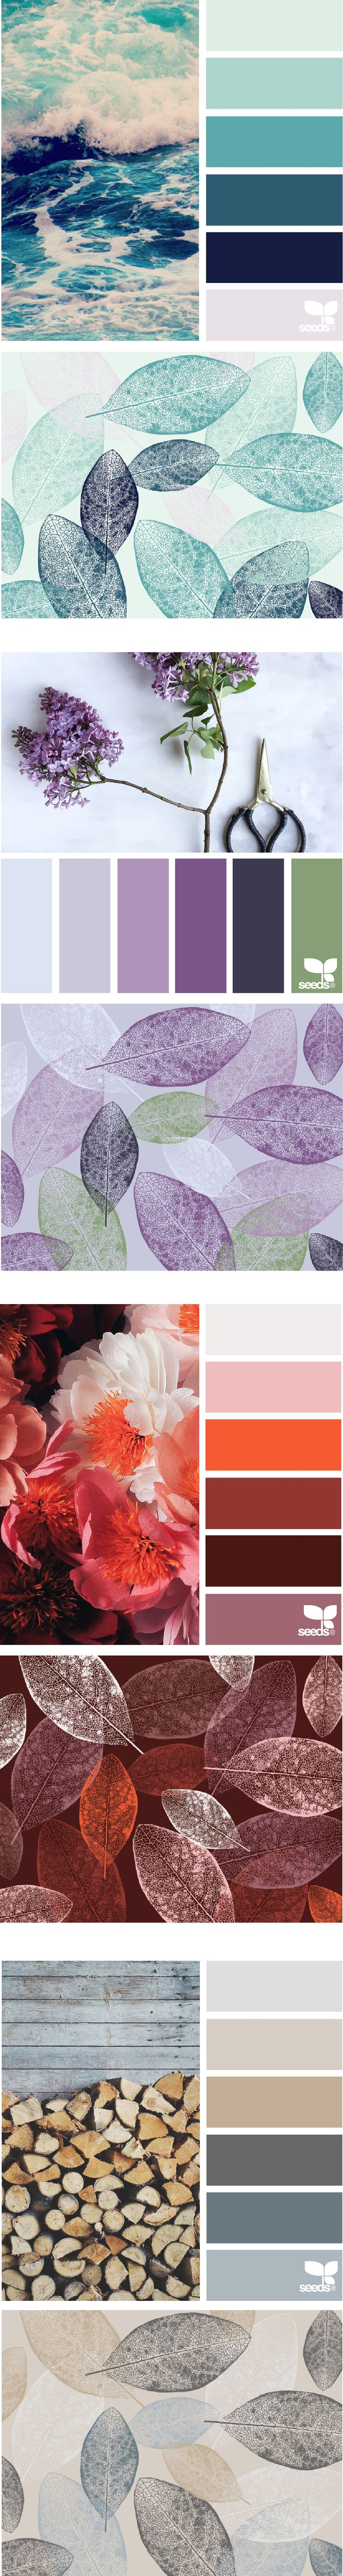 Announcing My New Color Class! Enter The Colorful World Of Design Seeds,  And Learn My Process For Using Color Inspired By The Seasons In Inspired  Color: Us